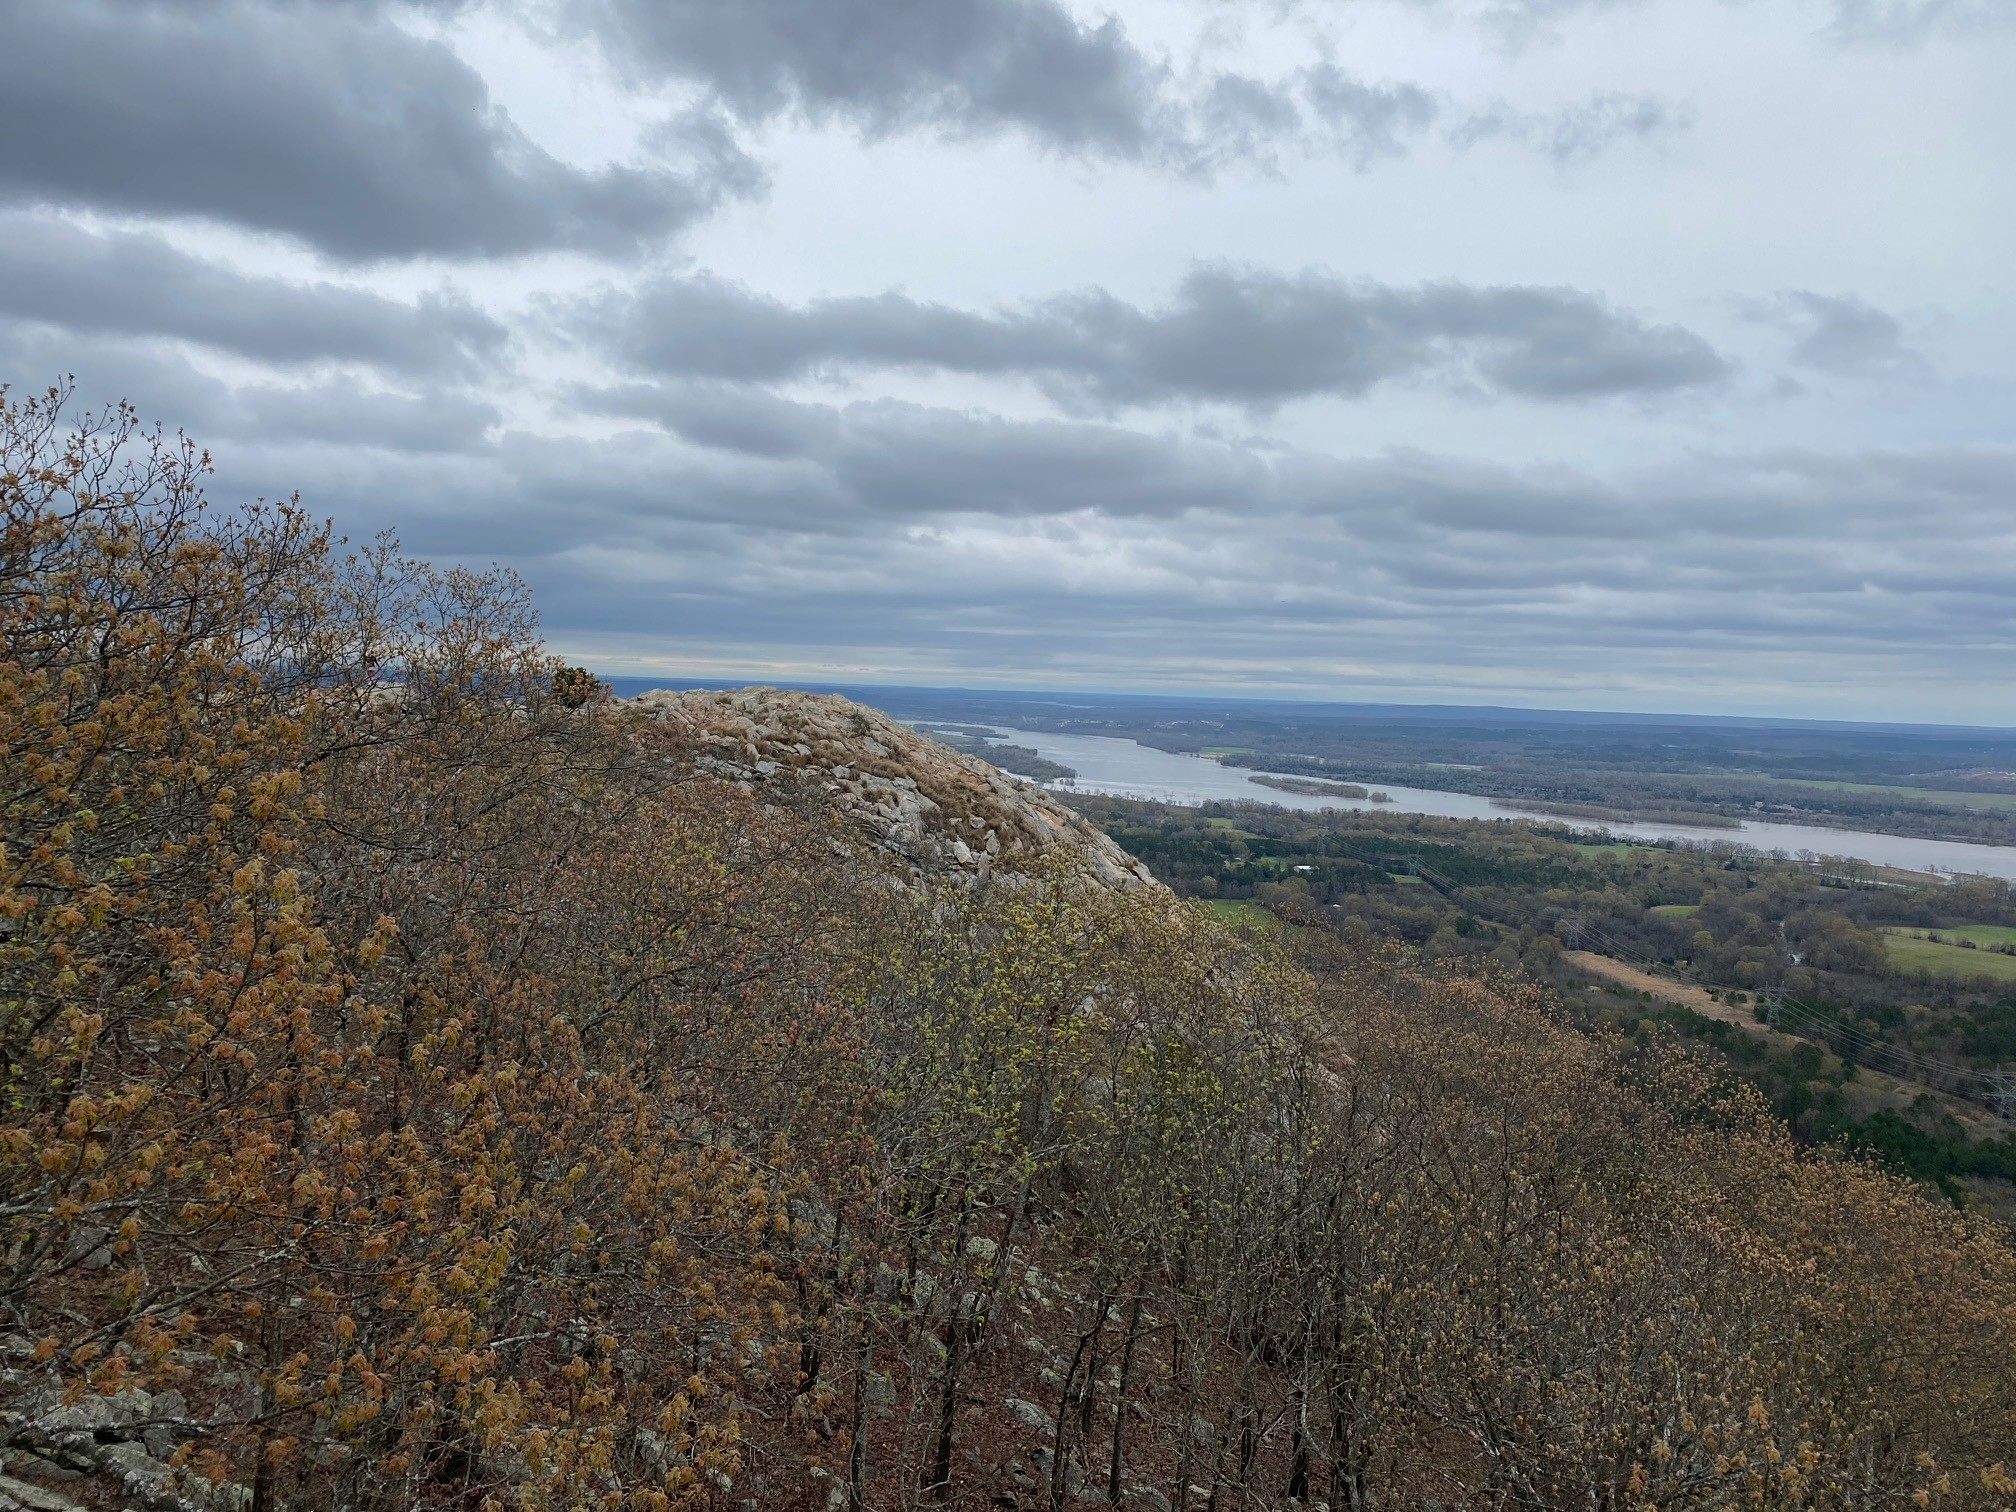 The view of the Arkansas River from Pinnacle Mountain State Park. Photo Courtesy of Pinnacle Mountain State Park.